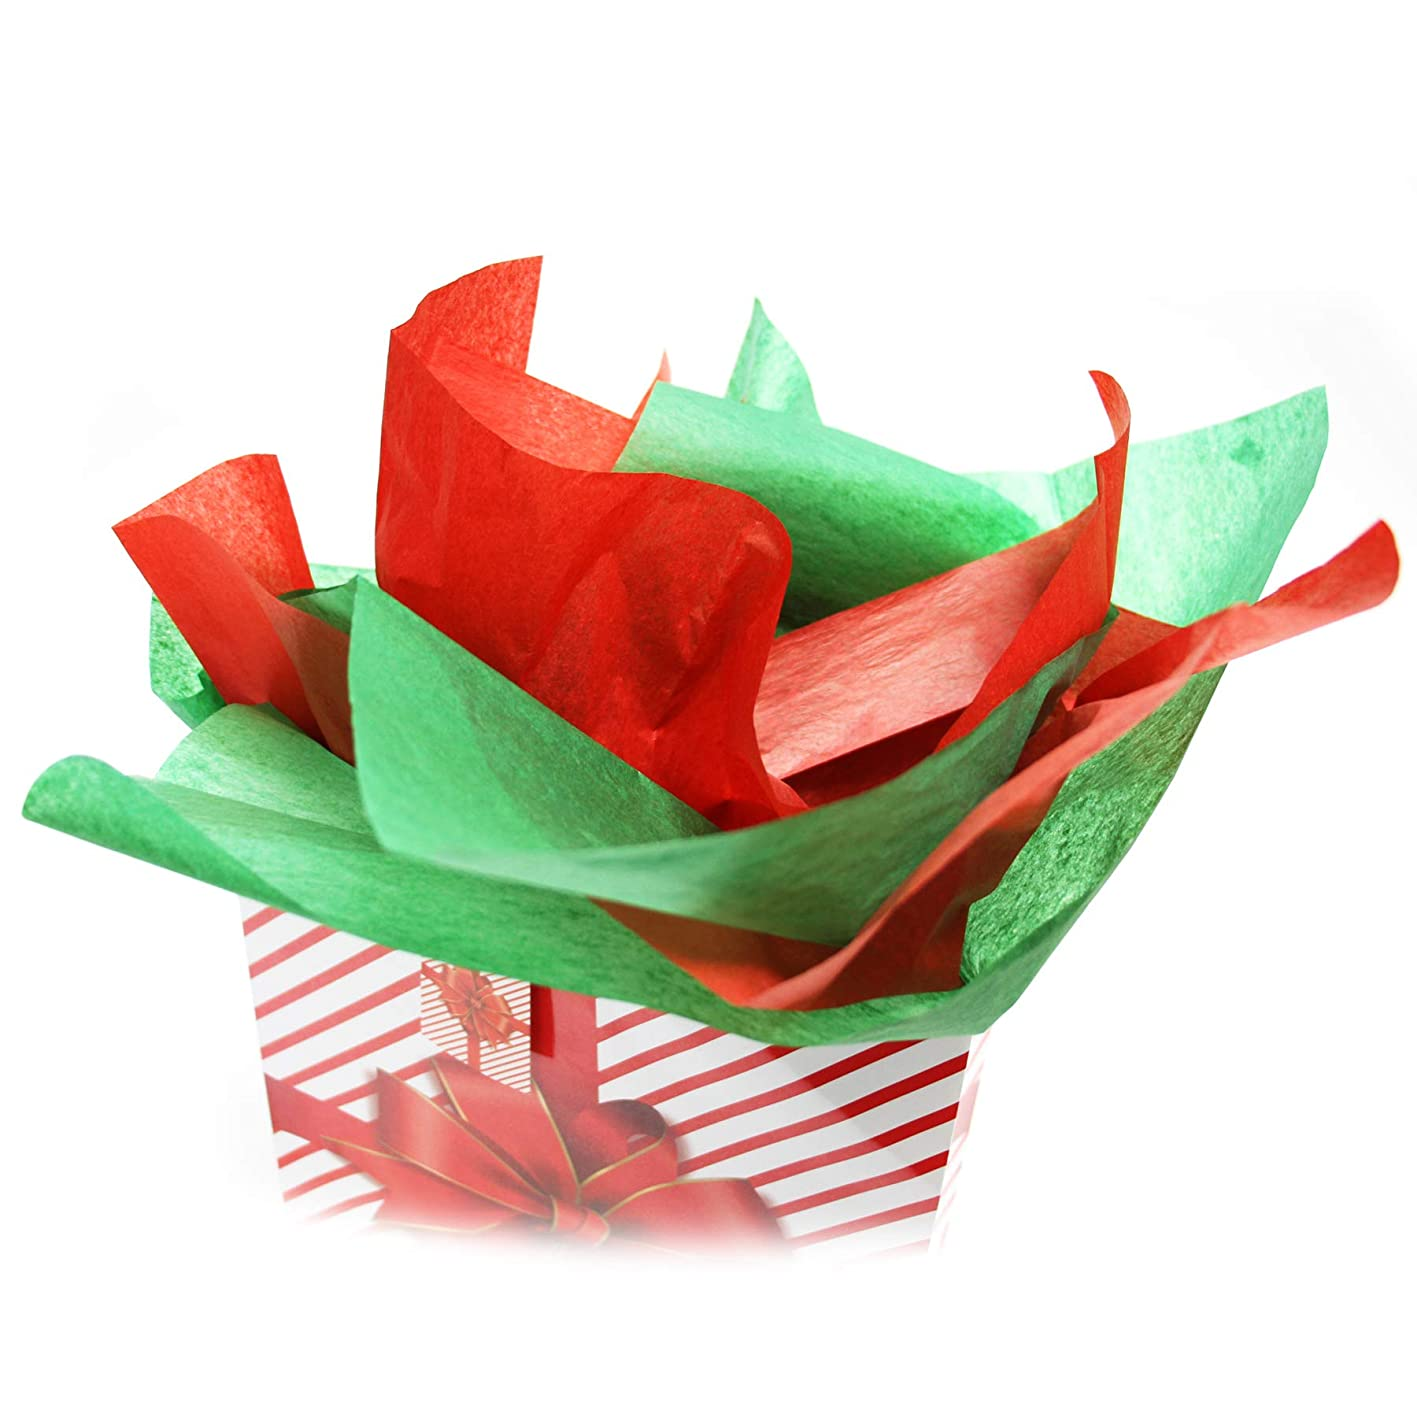 30-Sheet Christmas Tissue Paper (Red/Green) nmebufgzflu693